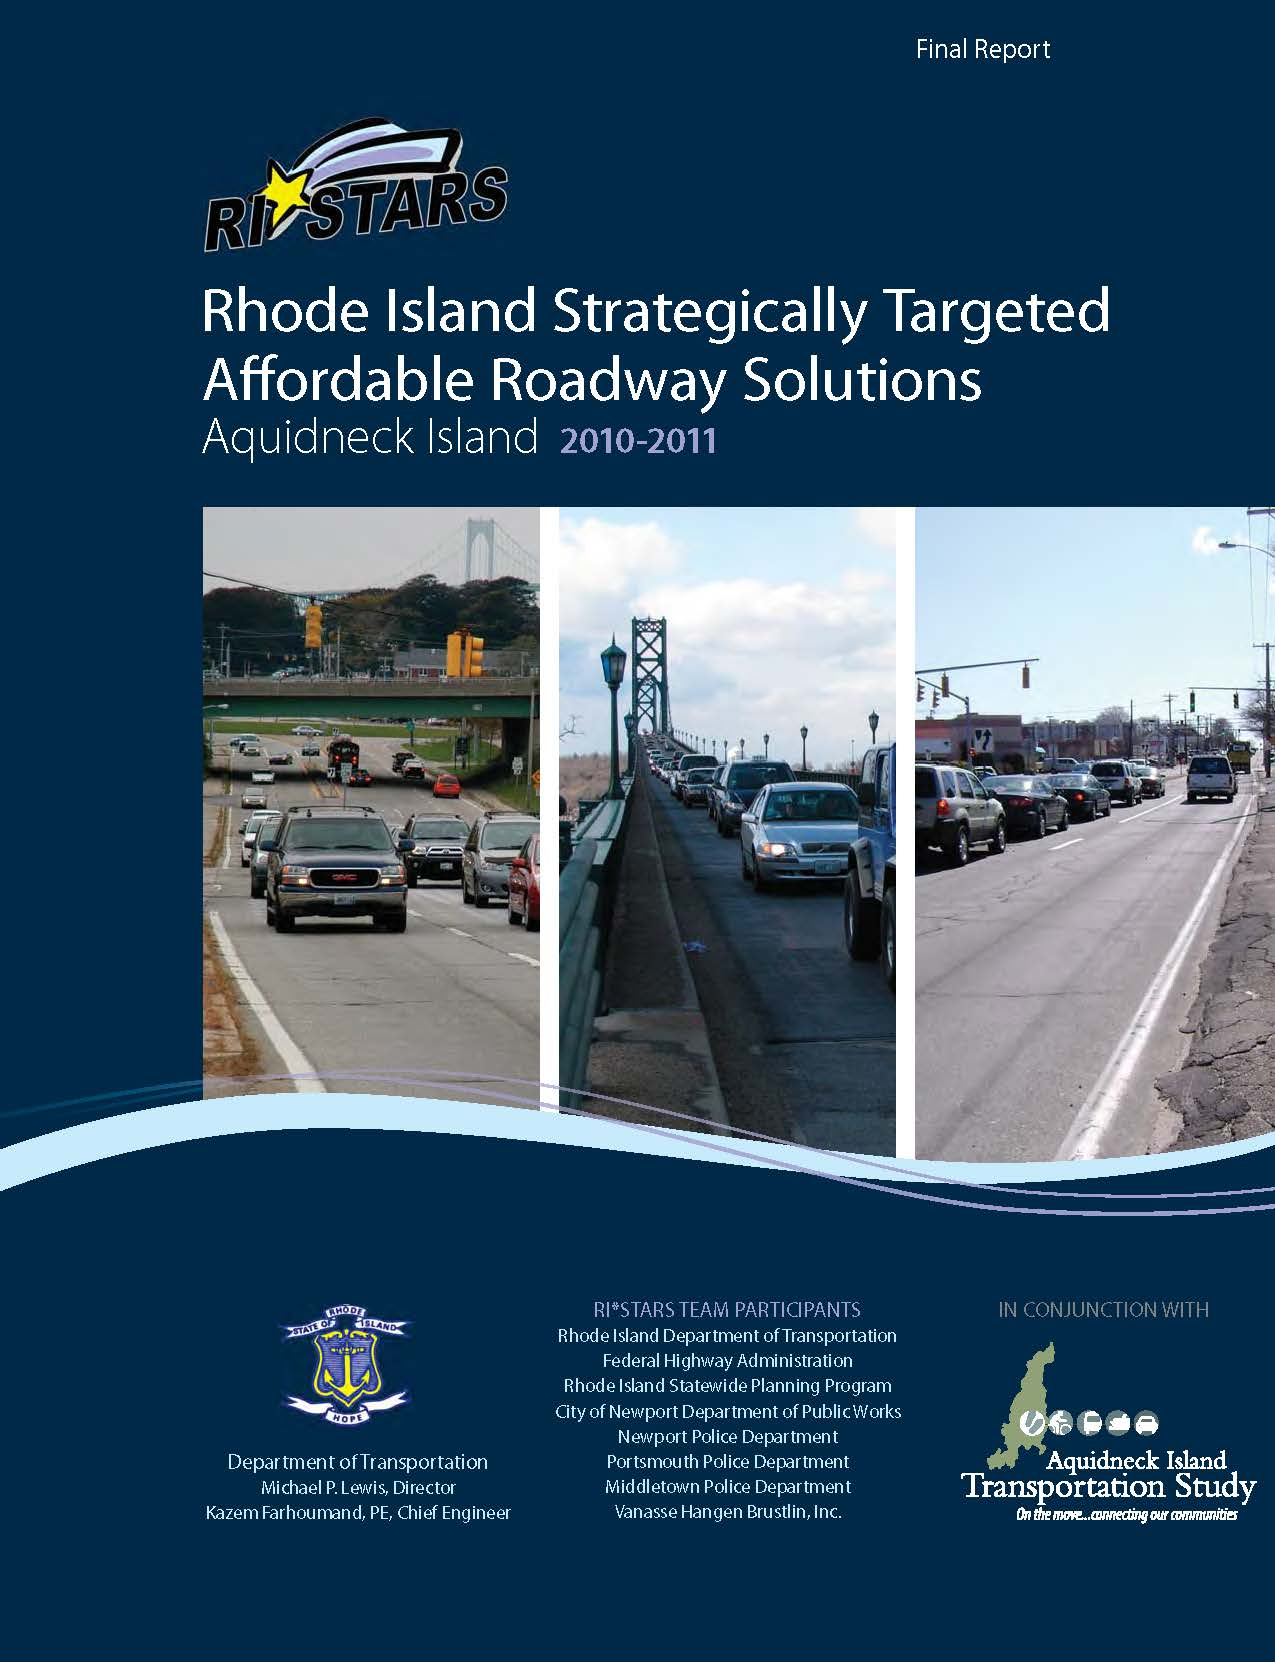 Rhode Island Strategically Targeted Affordable Roadway Solutions Cover